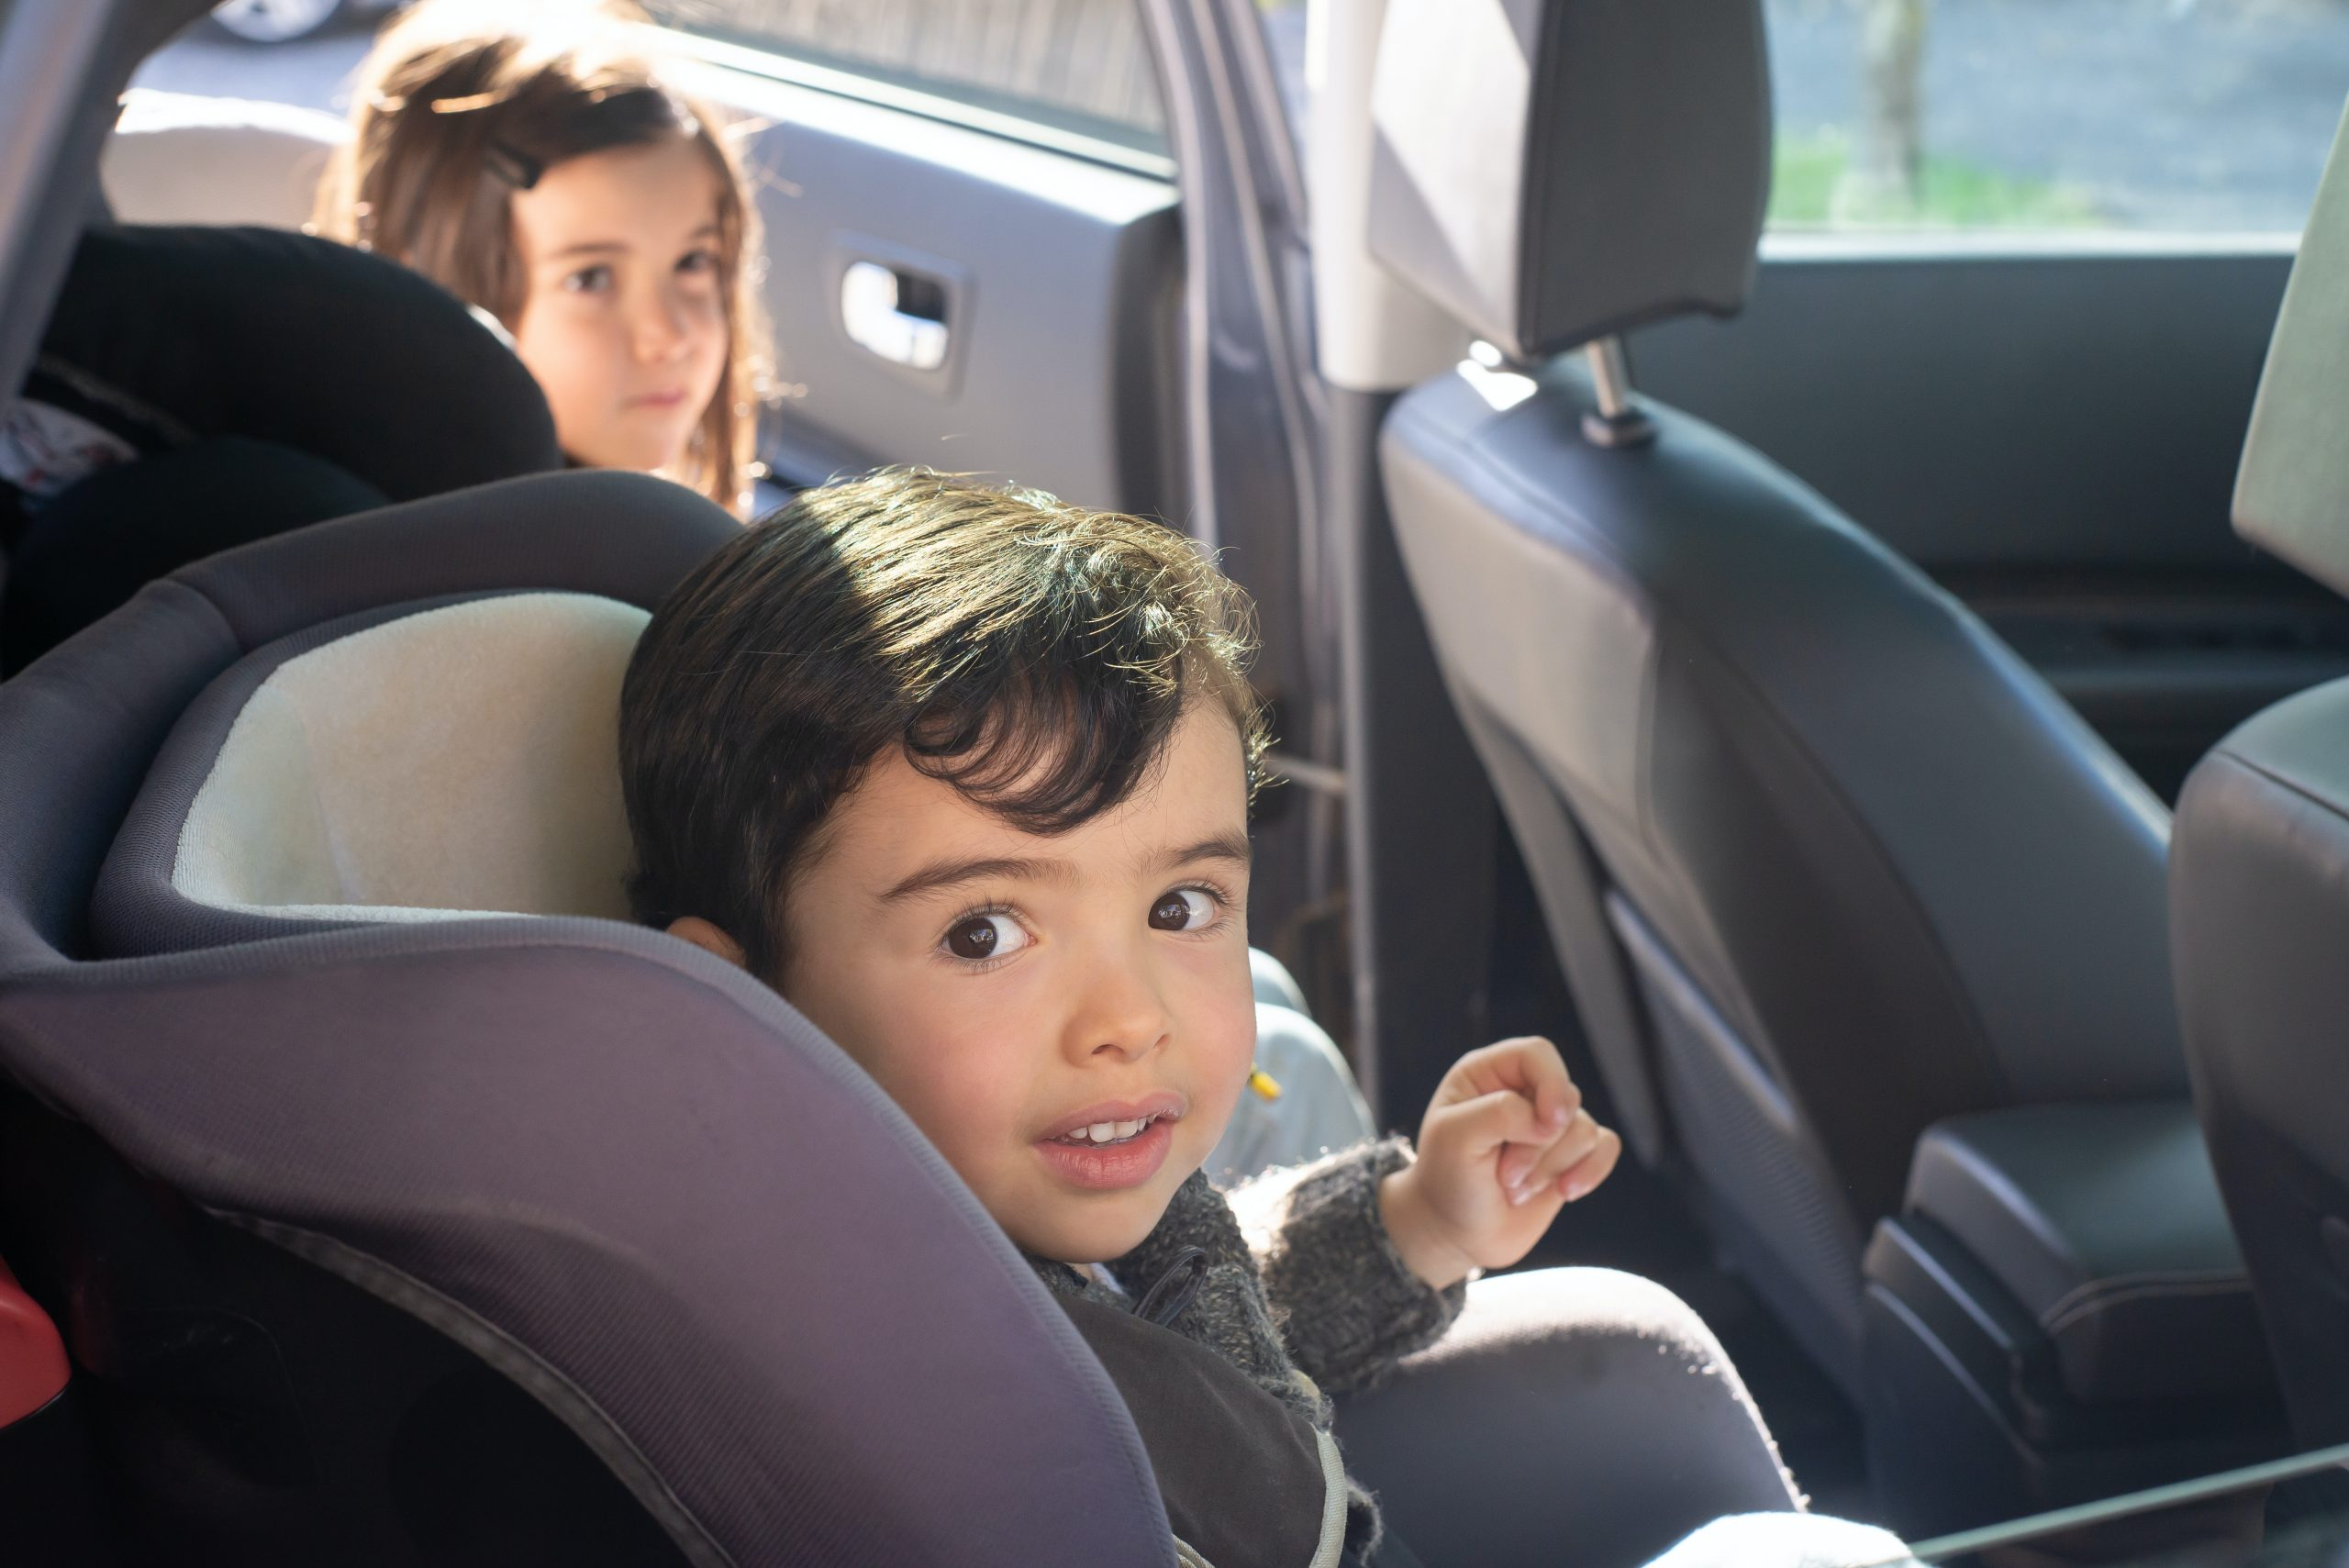 Child Safe in Child Seat